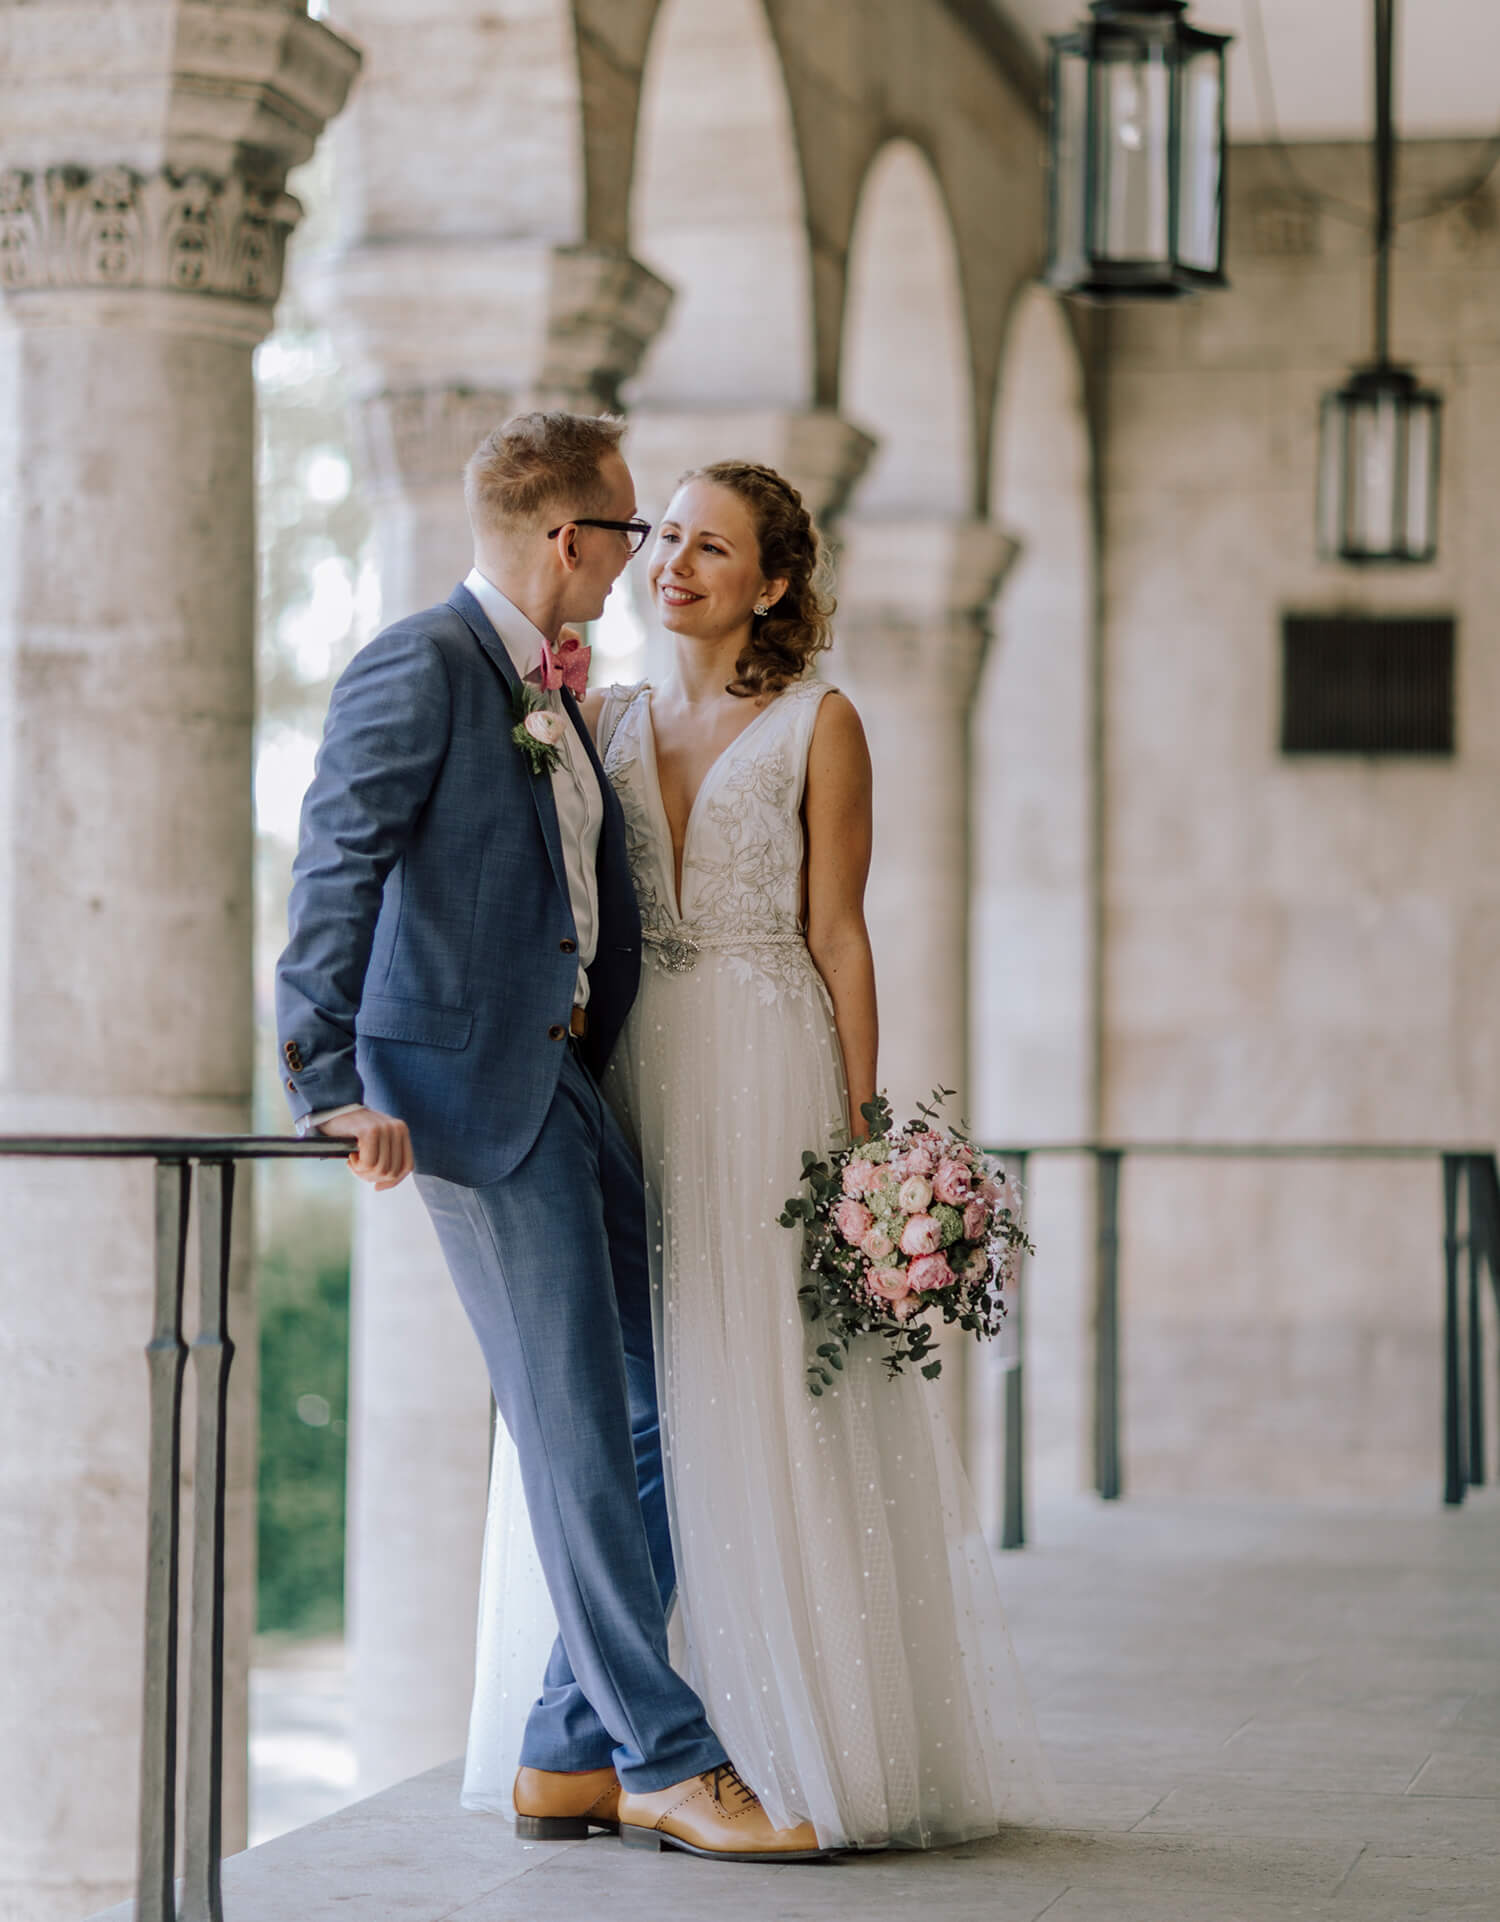 Wedding-Update-Our-Bridal-Couple-Shooting-Part-One-kationette-lifestyleblogger-nrw-weddingday-2018